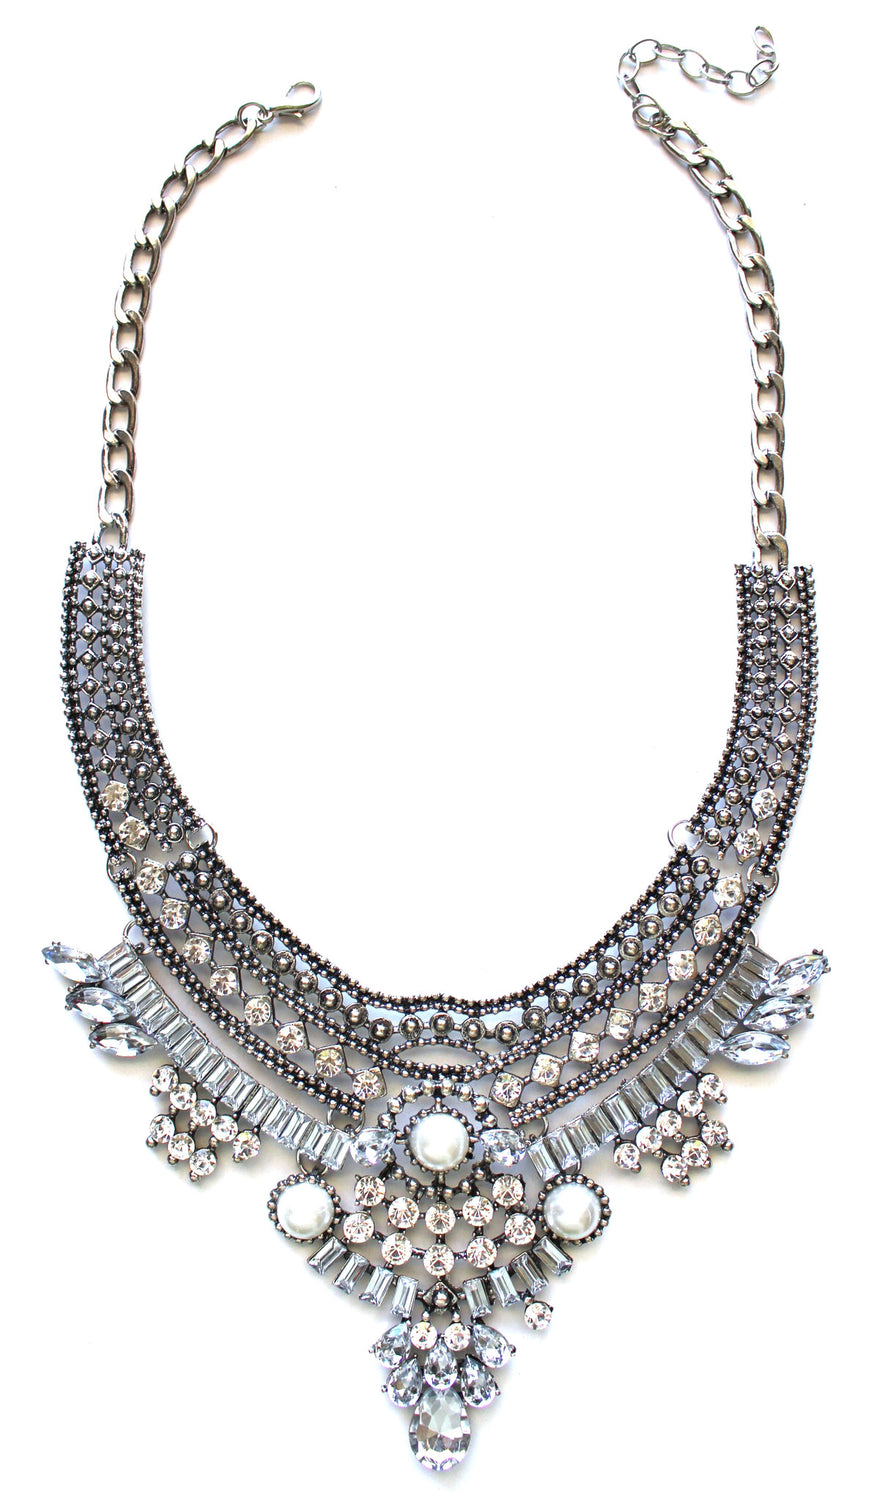 Boho Elegance Statement Necklace